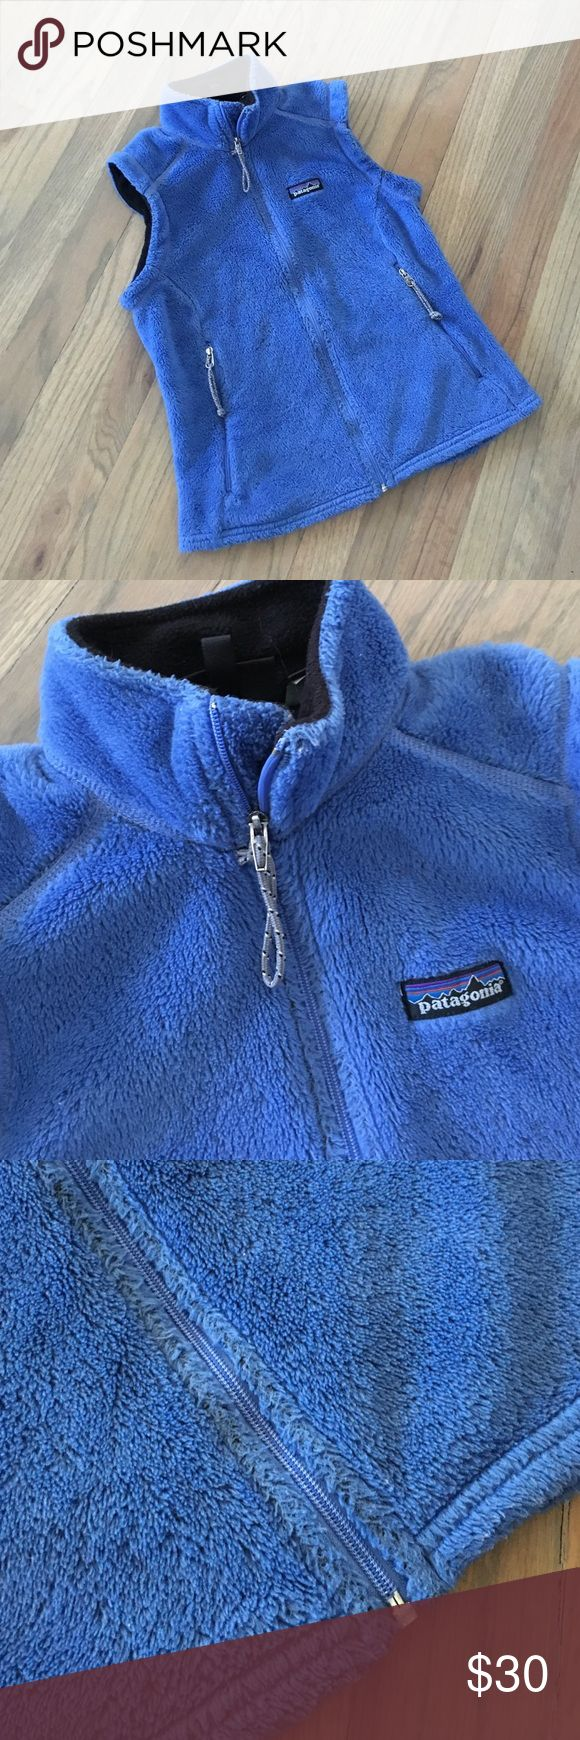 "Patagonia fleece vest This vest has been loved dearly but there is still lots of life left. Perfect for a petite lady. Pit to pit: 16"", total length: 20"". Good used condition. Wear present. Patagonia Jackets & Coats Vests"